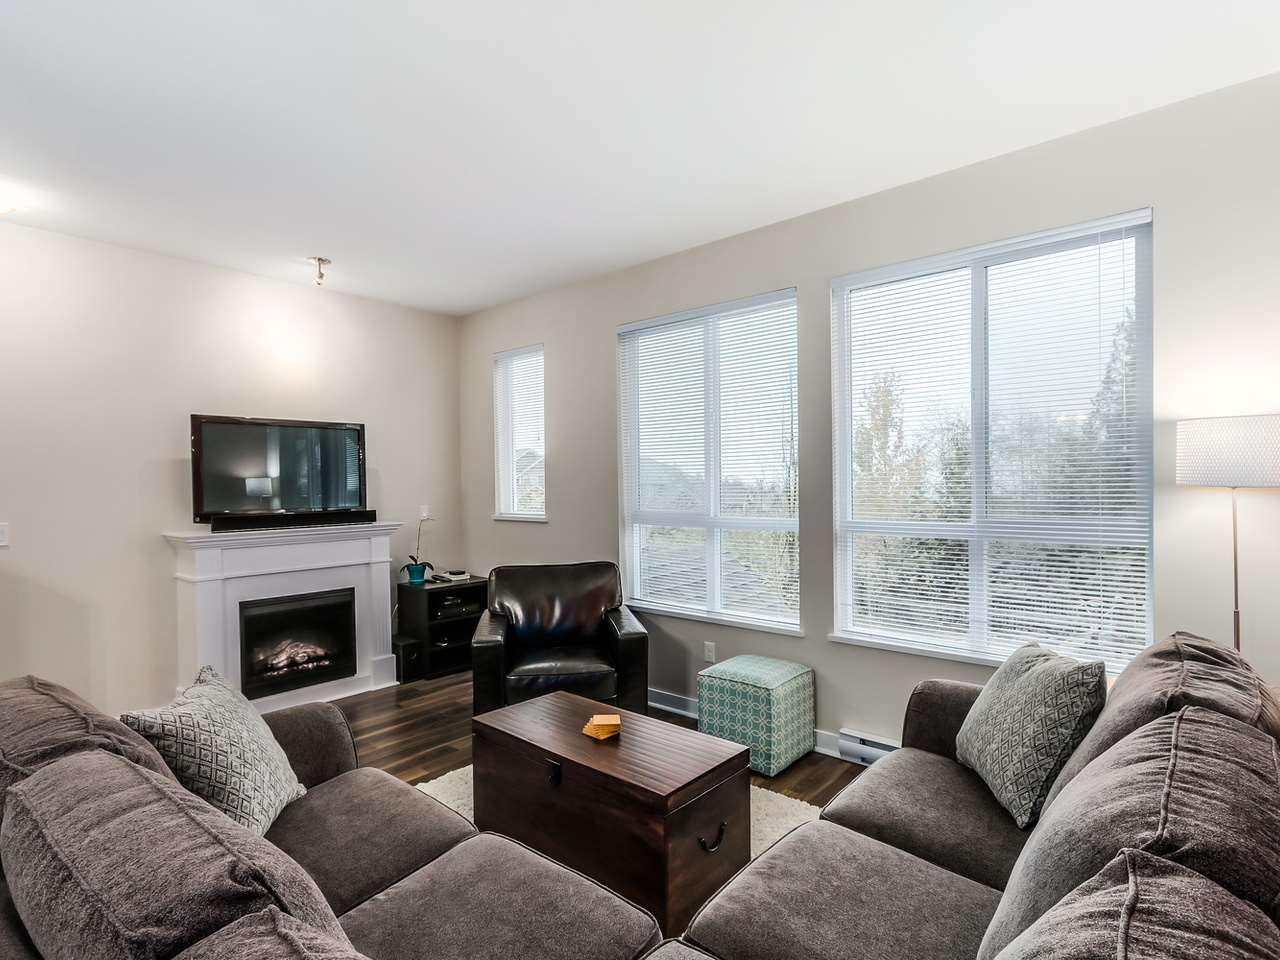 """Photo 3: Photos: 102 1480 SOUTHVIEW Street in Coquitlam: Burke Mountain Townhouse for sale in """"CEDAR CREEK NORTH"""" : MLS®# R2016018"""